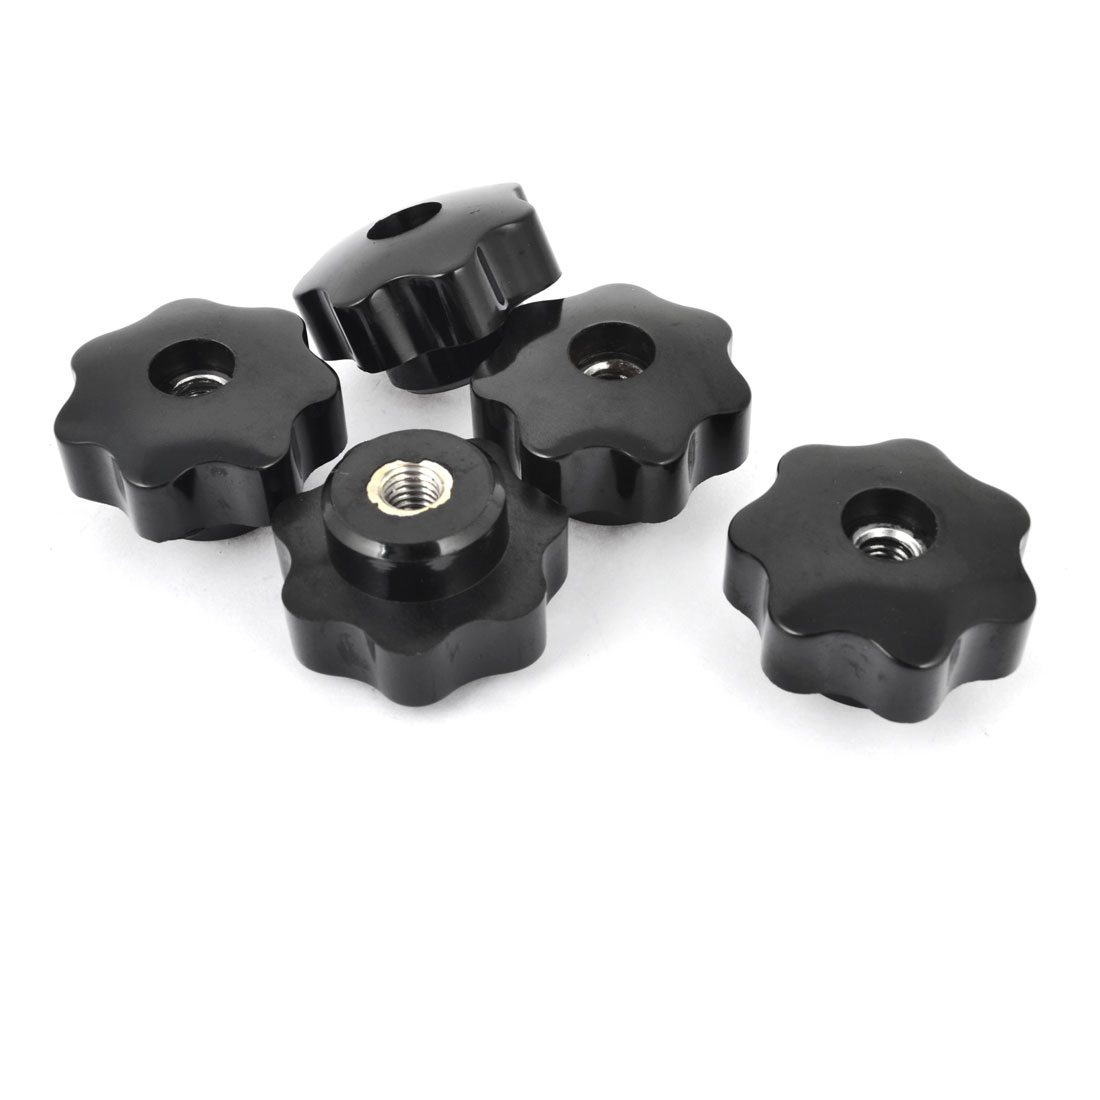 40mm Dia Head 8mm Diameter Female Thread Through Clamping Star Knob 5Pcs